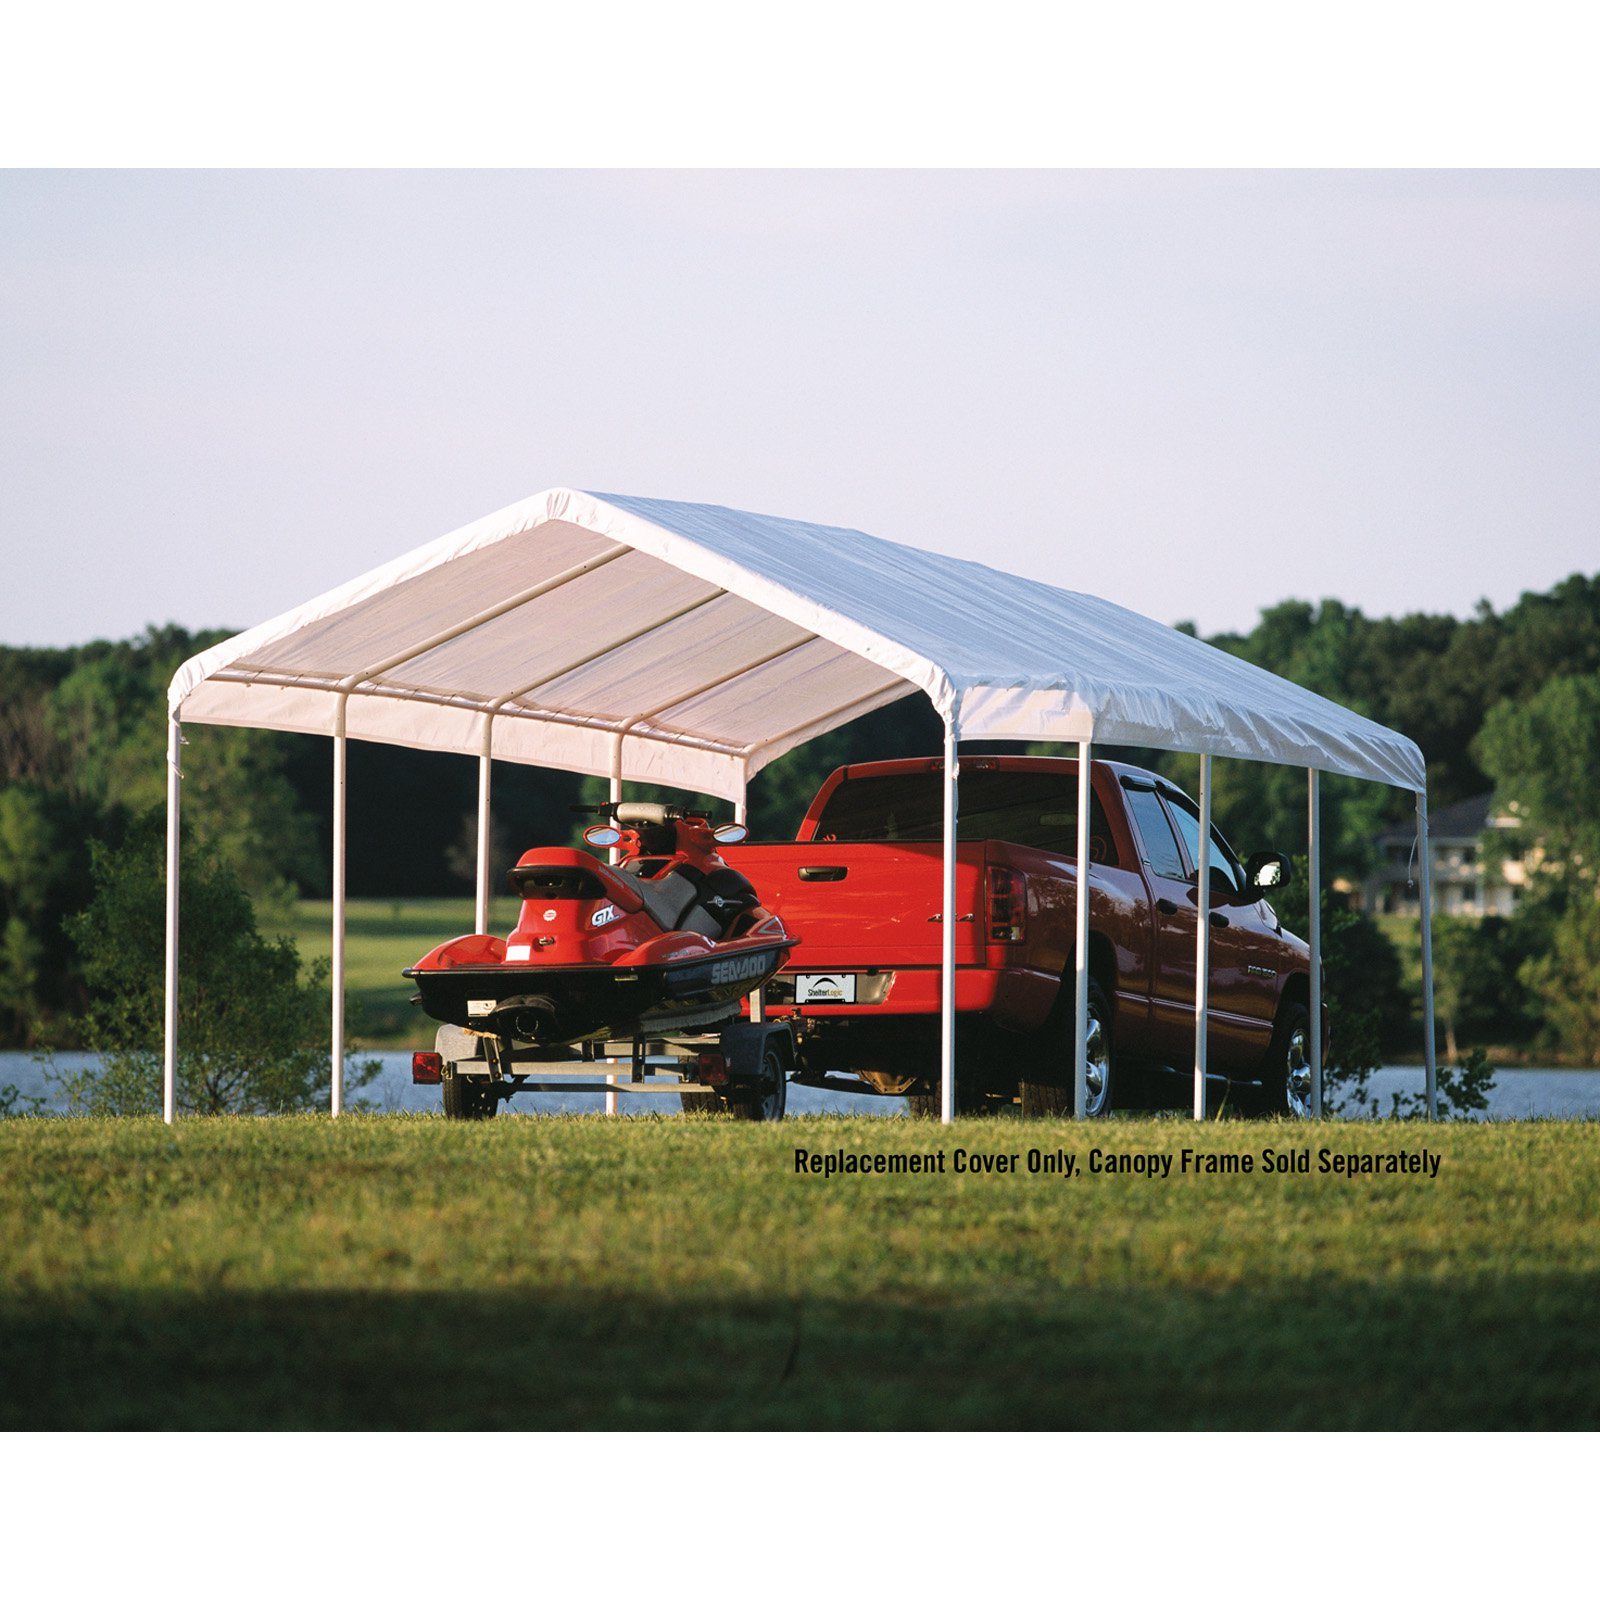 ShelterLogic 12 x 26 ft. Canopy Replacement Cover for 2 in. Frame  sc 1 st  Walmart & ShelterLogic 12 x 26 ft. Canopy Replacement Cover for 2 in. Frame ...